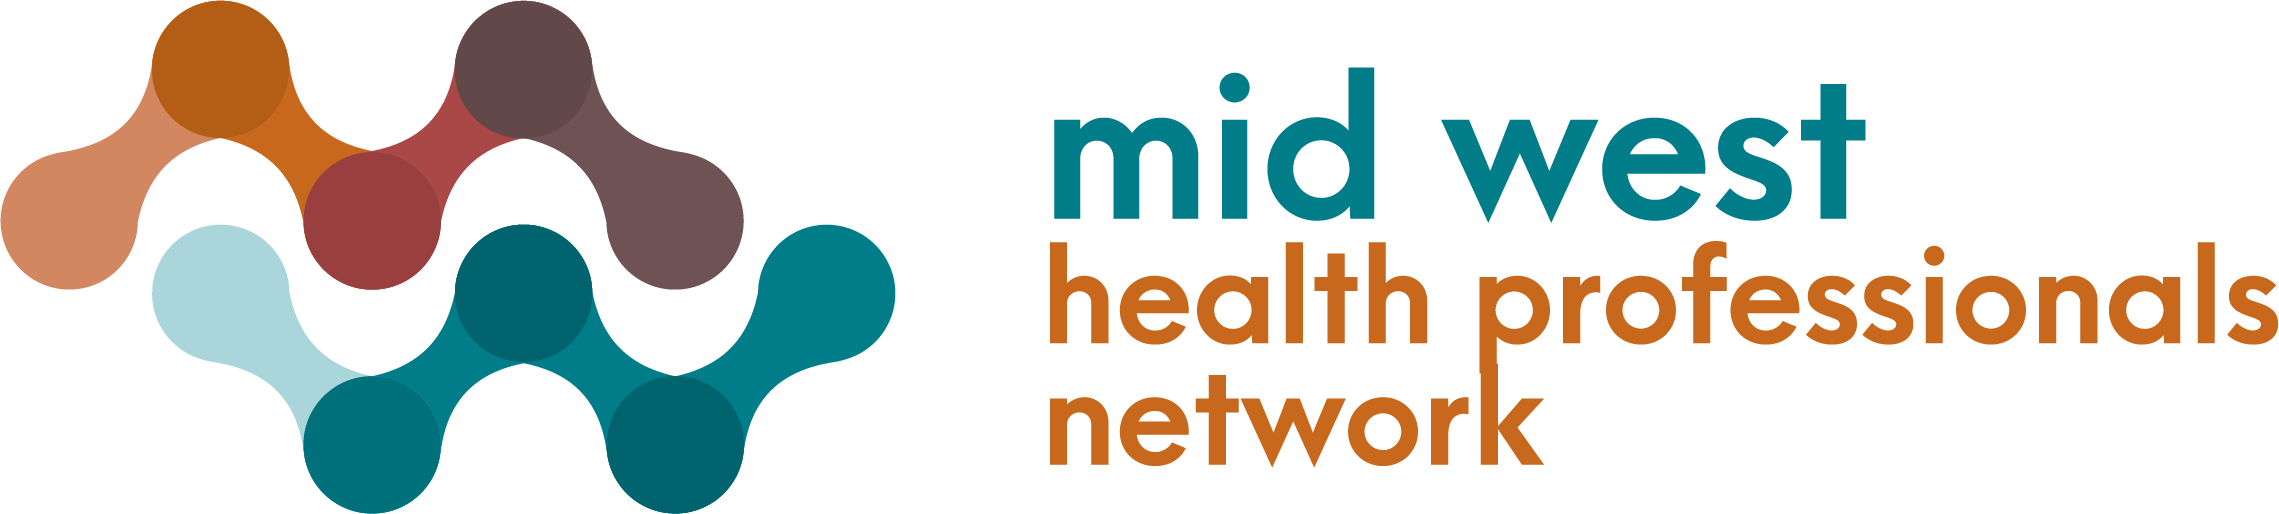 Mid West Health Professional Network